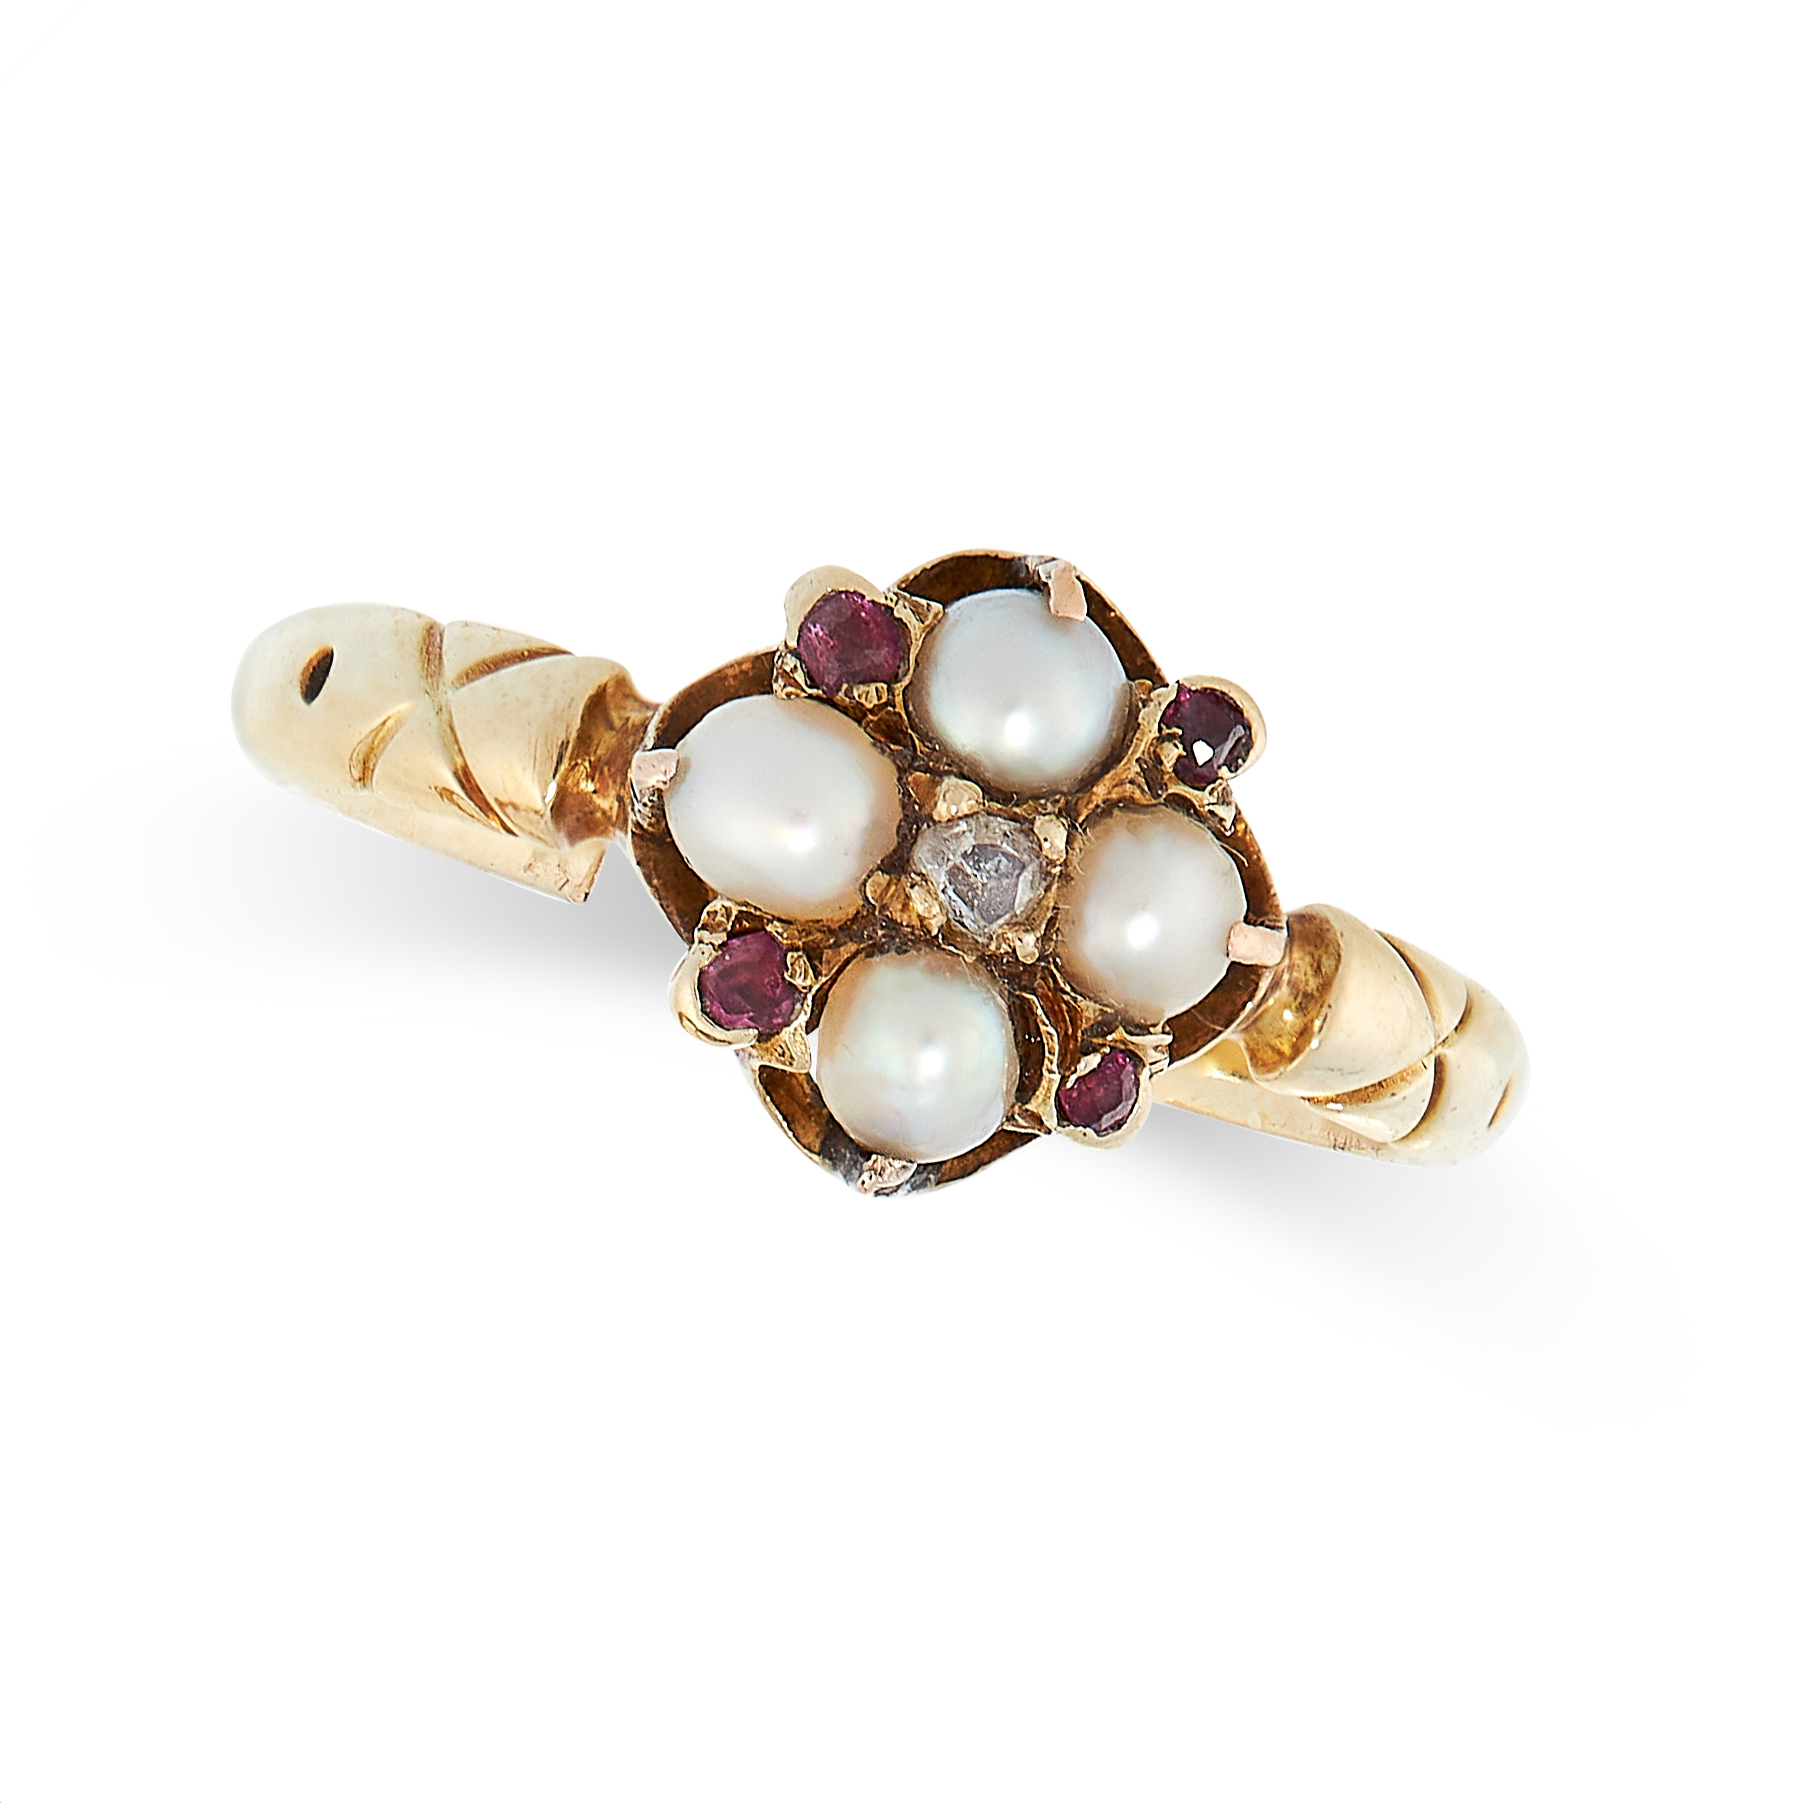 ANTIQUE PEARL, RUBY AND DIAMOND RING in yellow gold, set with a central rose cut diamond in a border